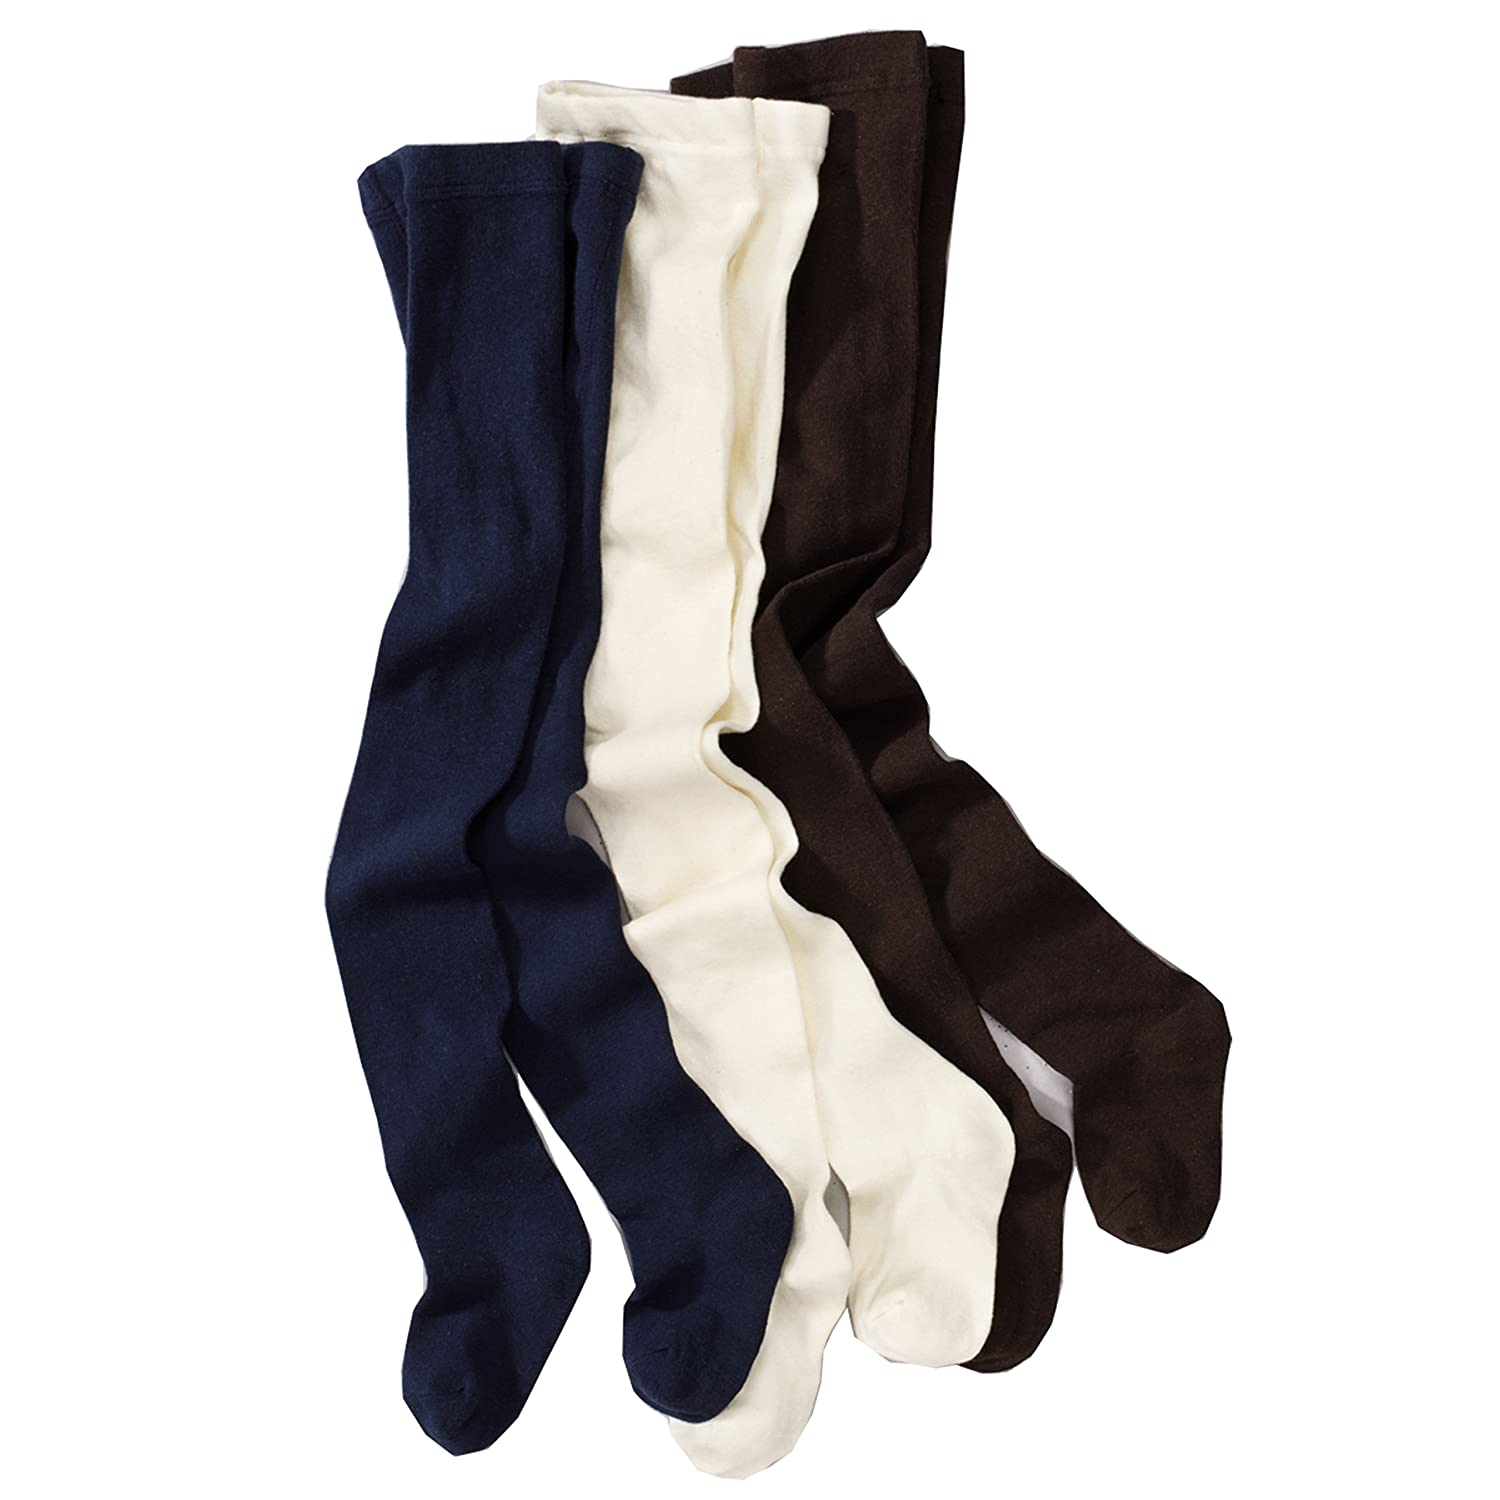 Wellyou Baby And Children's Tights - 3 Pack - Solid Colours, Ecru, Navy, Brown